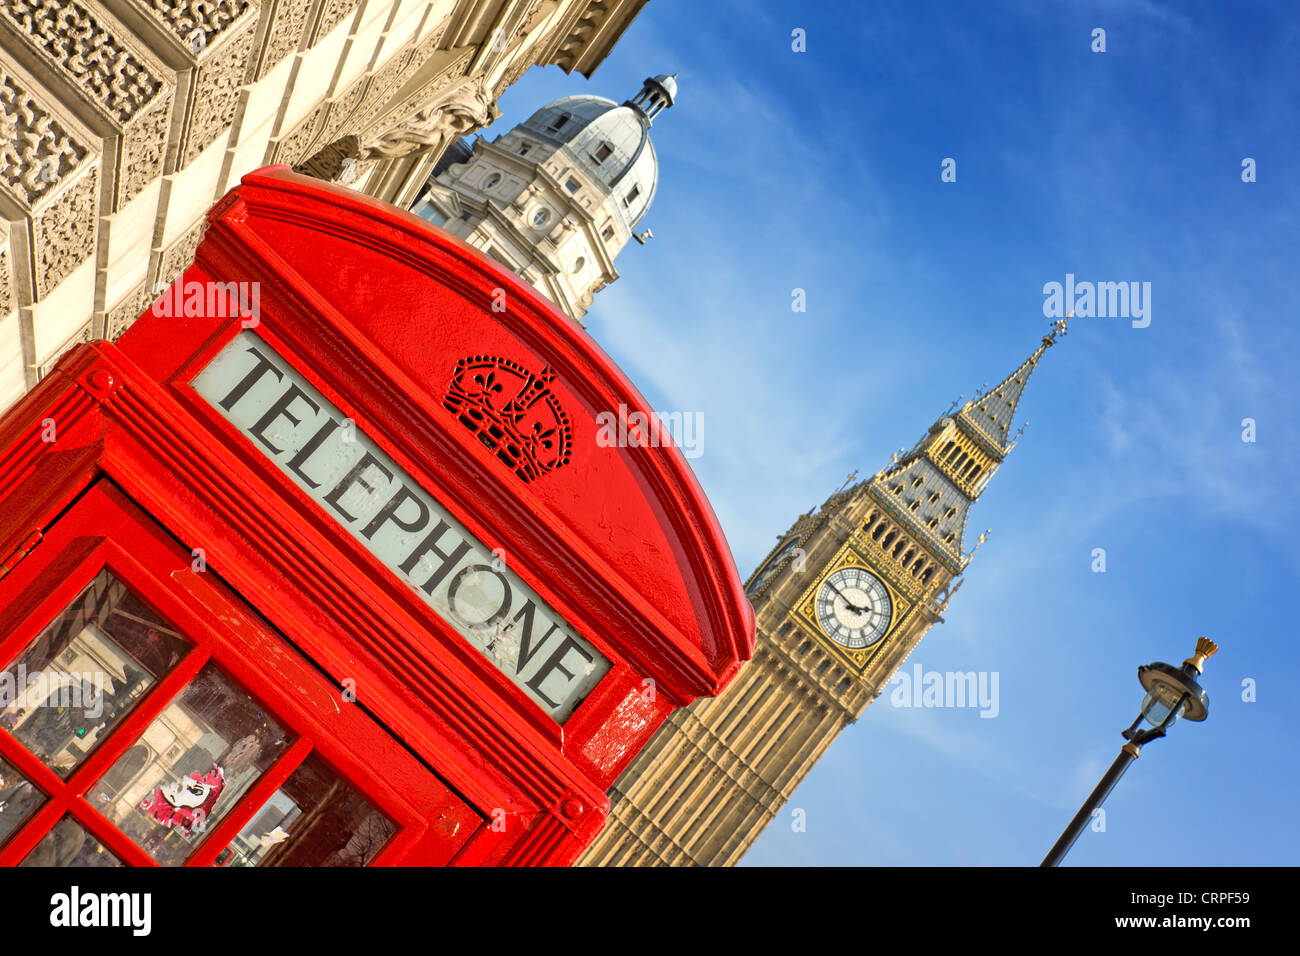 A red telephone box and the clock tower known as Big Ben at the Palace of Westminster. - Stock Image